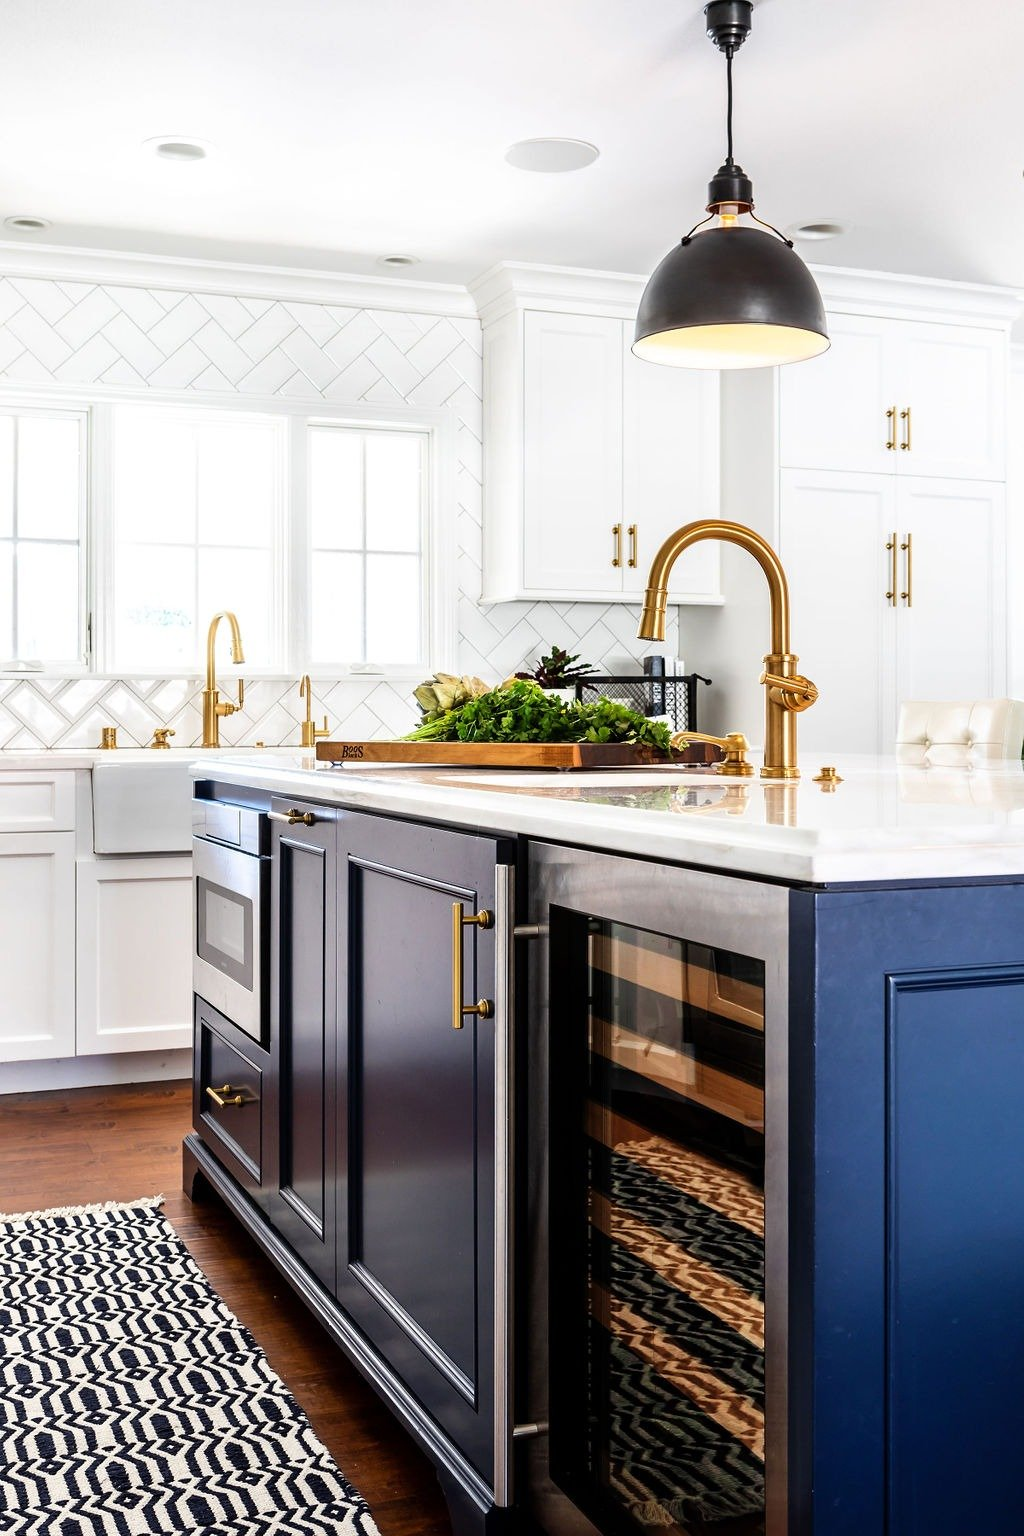 westlake kitchen - classic kitchen design - kitchen trends